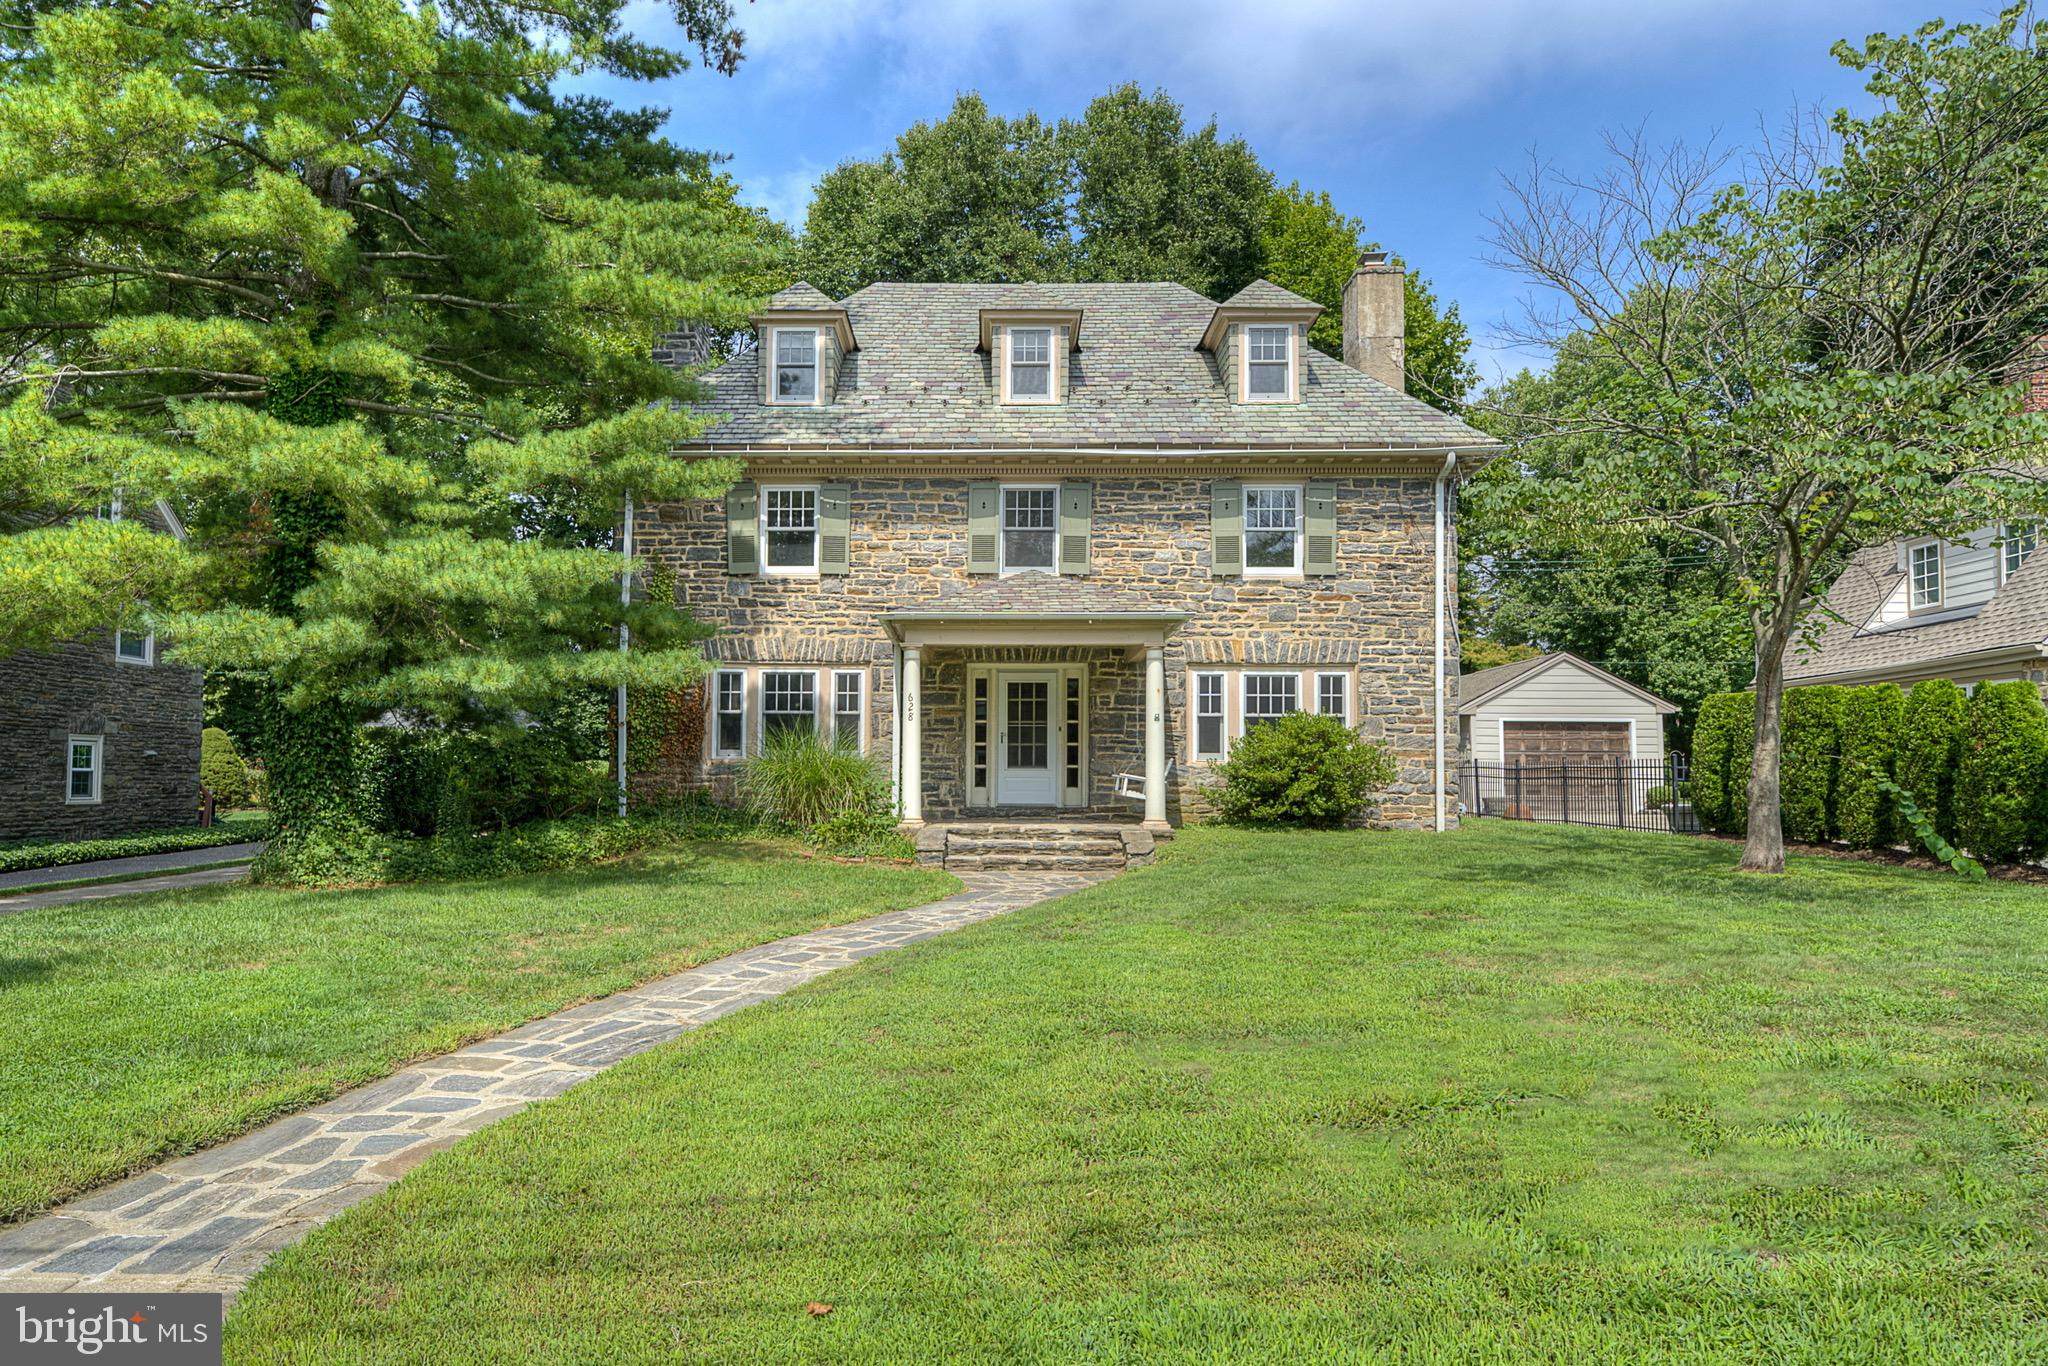 Look no further… this is the home you have been searching for! This beautiful, spacious 1920 stone home, located in the highly sought after Merion Golf Manor, is full of antique charm. The property backs up to a scenic walking trail and the esteemed Haverford College. Overhill Road offers a wonderful family neighborhood where you can enjoy family block parties and community family get togethers throughout the year! Upon entering the foyer, you will find formal dining and living rooms, both with wood burning fireplaces providing both comfort and elegance. As you continue through the first floor you will enter the kitchen equipped with butcher block countertops and a seating area suitable for family and friends. From the kitchen, you will find access to the basement with hookups for the washer and dryer and a large sized utility sink. The second floor offers three bedrooms, two bathrooms, and an office that can also serve as an additional bedroom. But that's not all!  An additional third floor contains two more spacious bedrooms and a full sized bathroom. There is plenty of living space in this one-of-a kind home! Your future home is conveniently located near popular local hotspots like Merion Golf Club, Carlino's Market, Tired Hands Brewery, and Suburban Square-one of the most lively places in the Philadelphia area to find today's trending shopping styles, restaurants, and so much more. The local train line is close by to take you directly into Philadelphia and nearby destinations. Do not miss out on this opportunity to own this home and become the envy of all your friends and family!